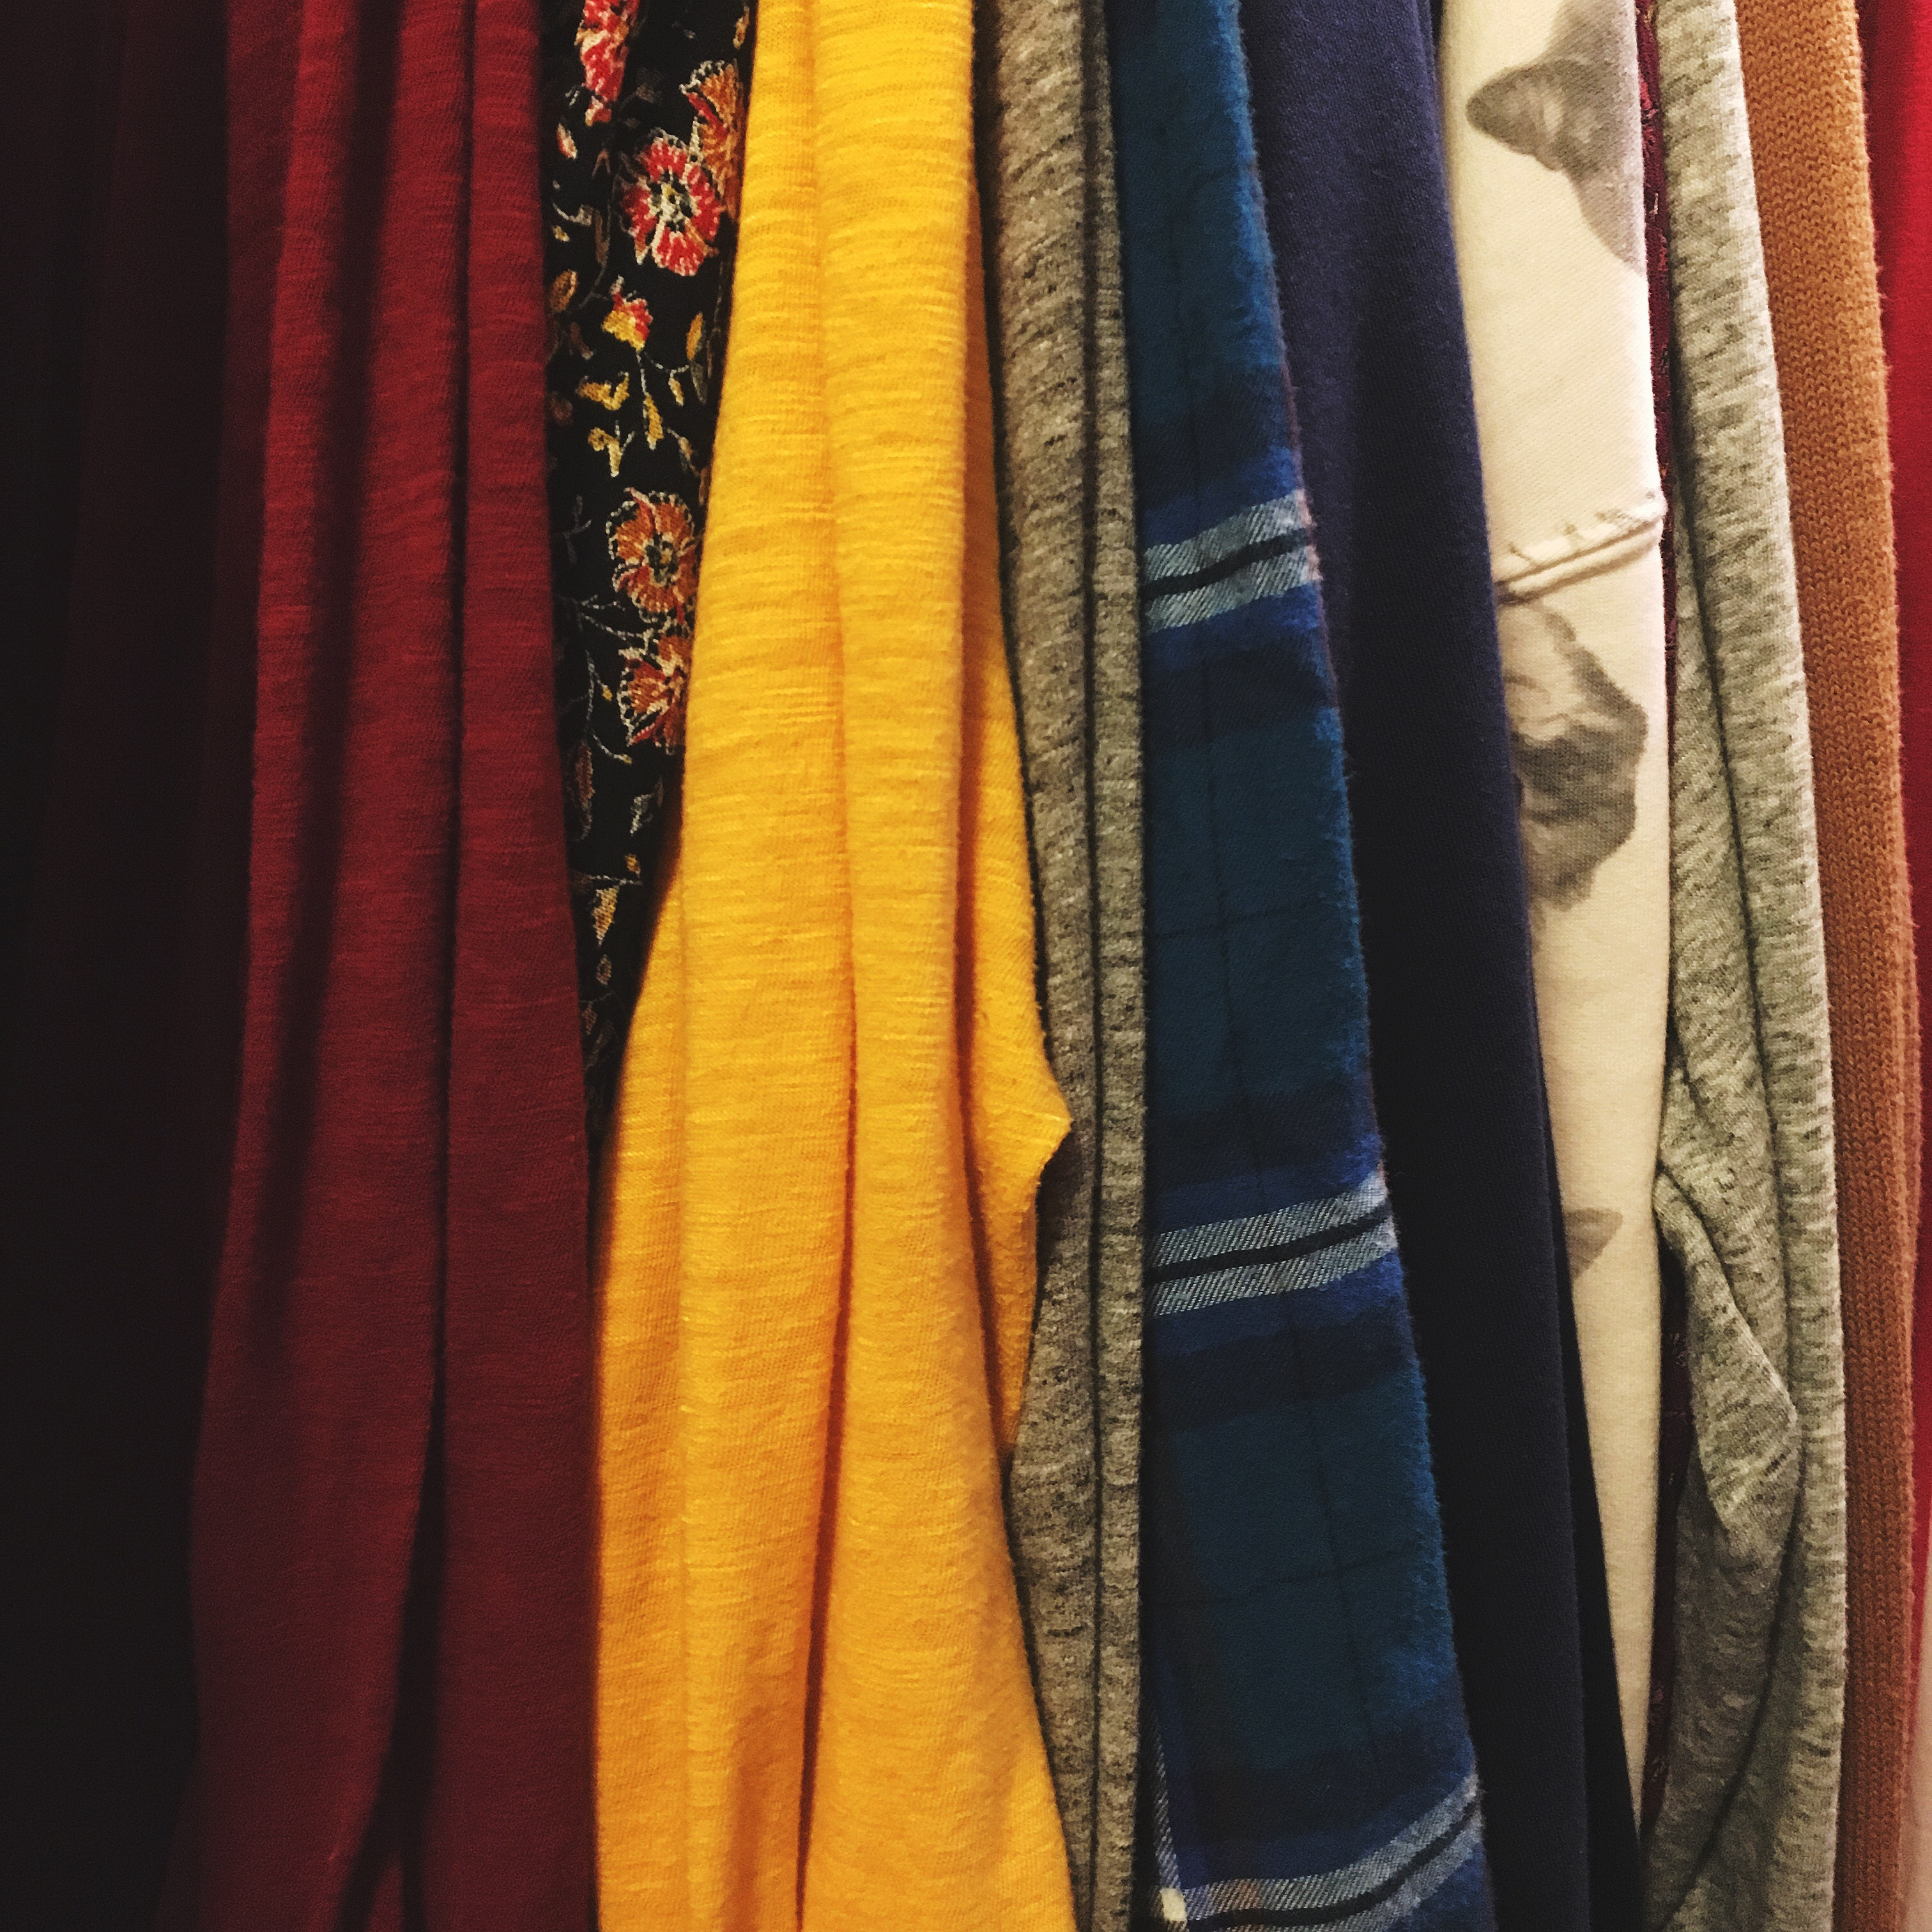 Workhorse Wardrobe: Cleaning Out the Closet